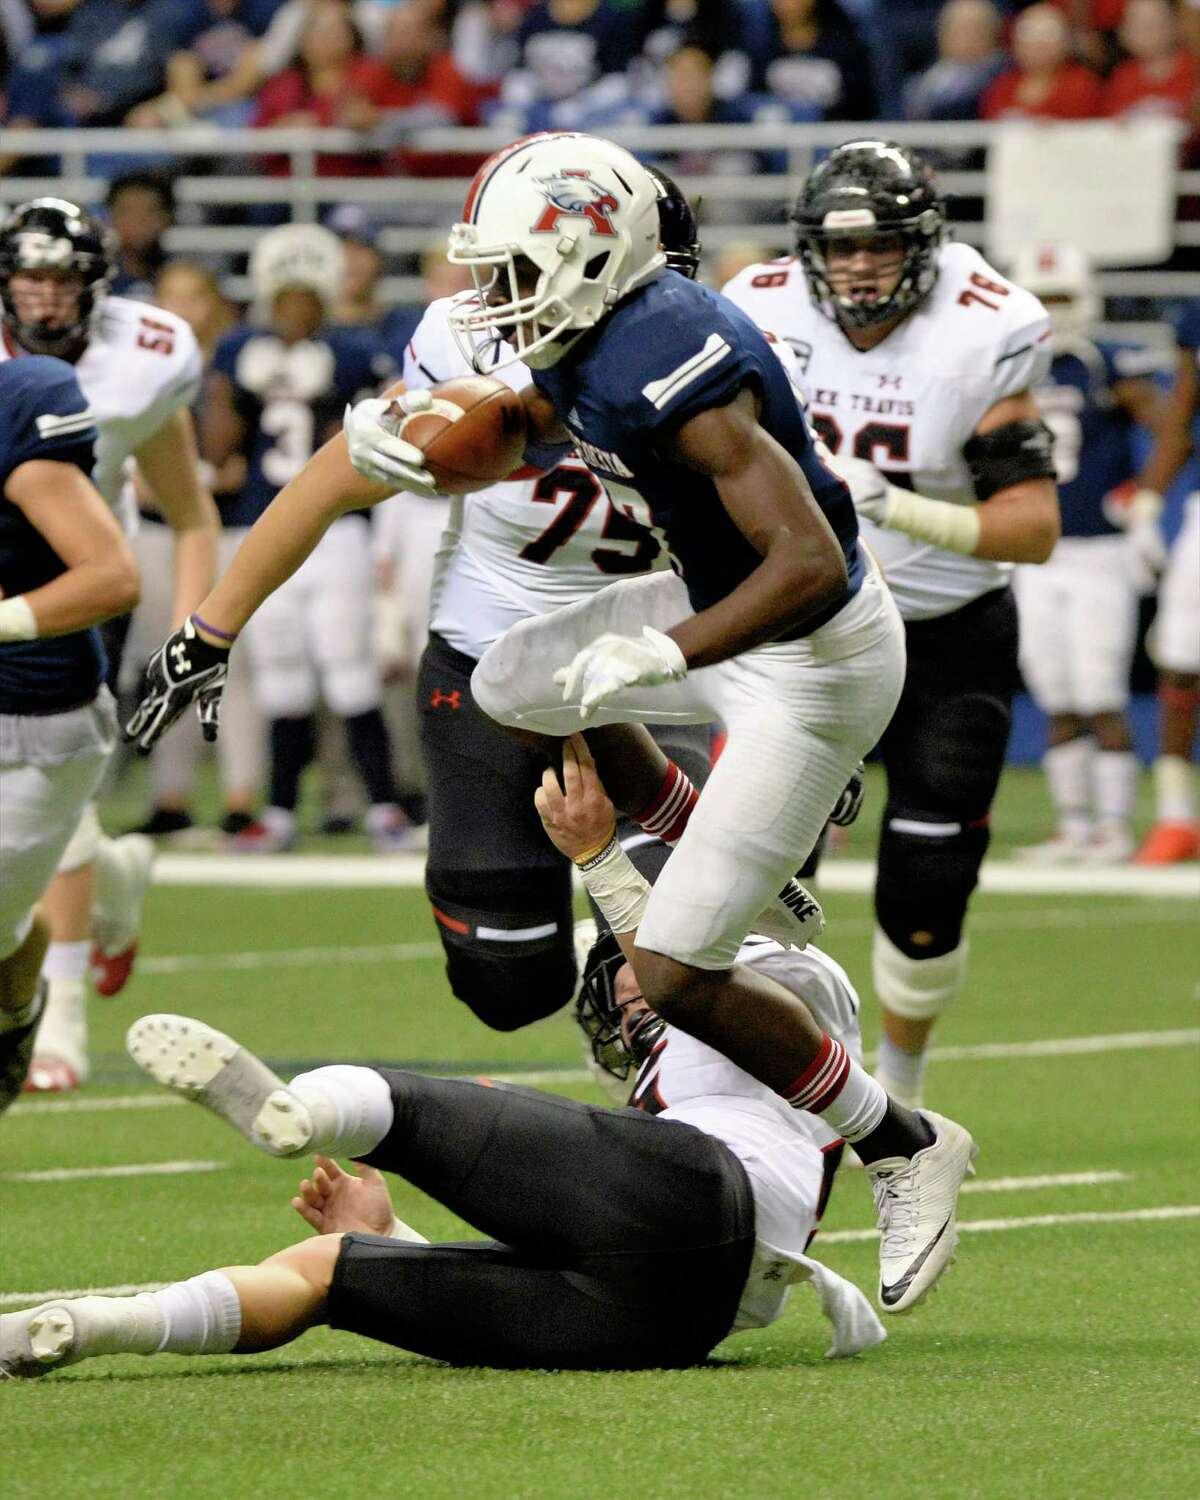 Alex Morris (17) of Atascocita carries the ball after recovering a field goal attempt by Lake Travis in the first half of the Conference 6A Division I State Semi-Final playoff game between the Atascocita Eagles and the Lake Travis Cavaliers on Saturday December 10, 2016 at the Alamodome, San Antonio, TX.